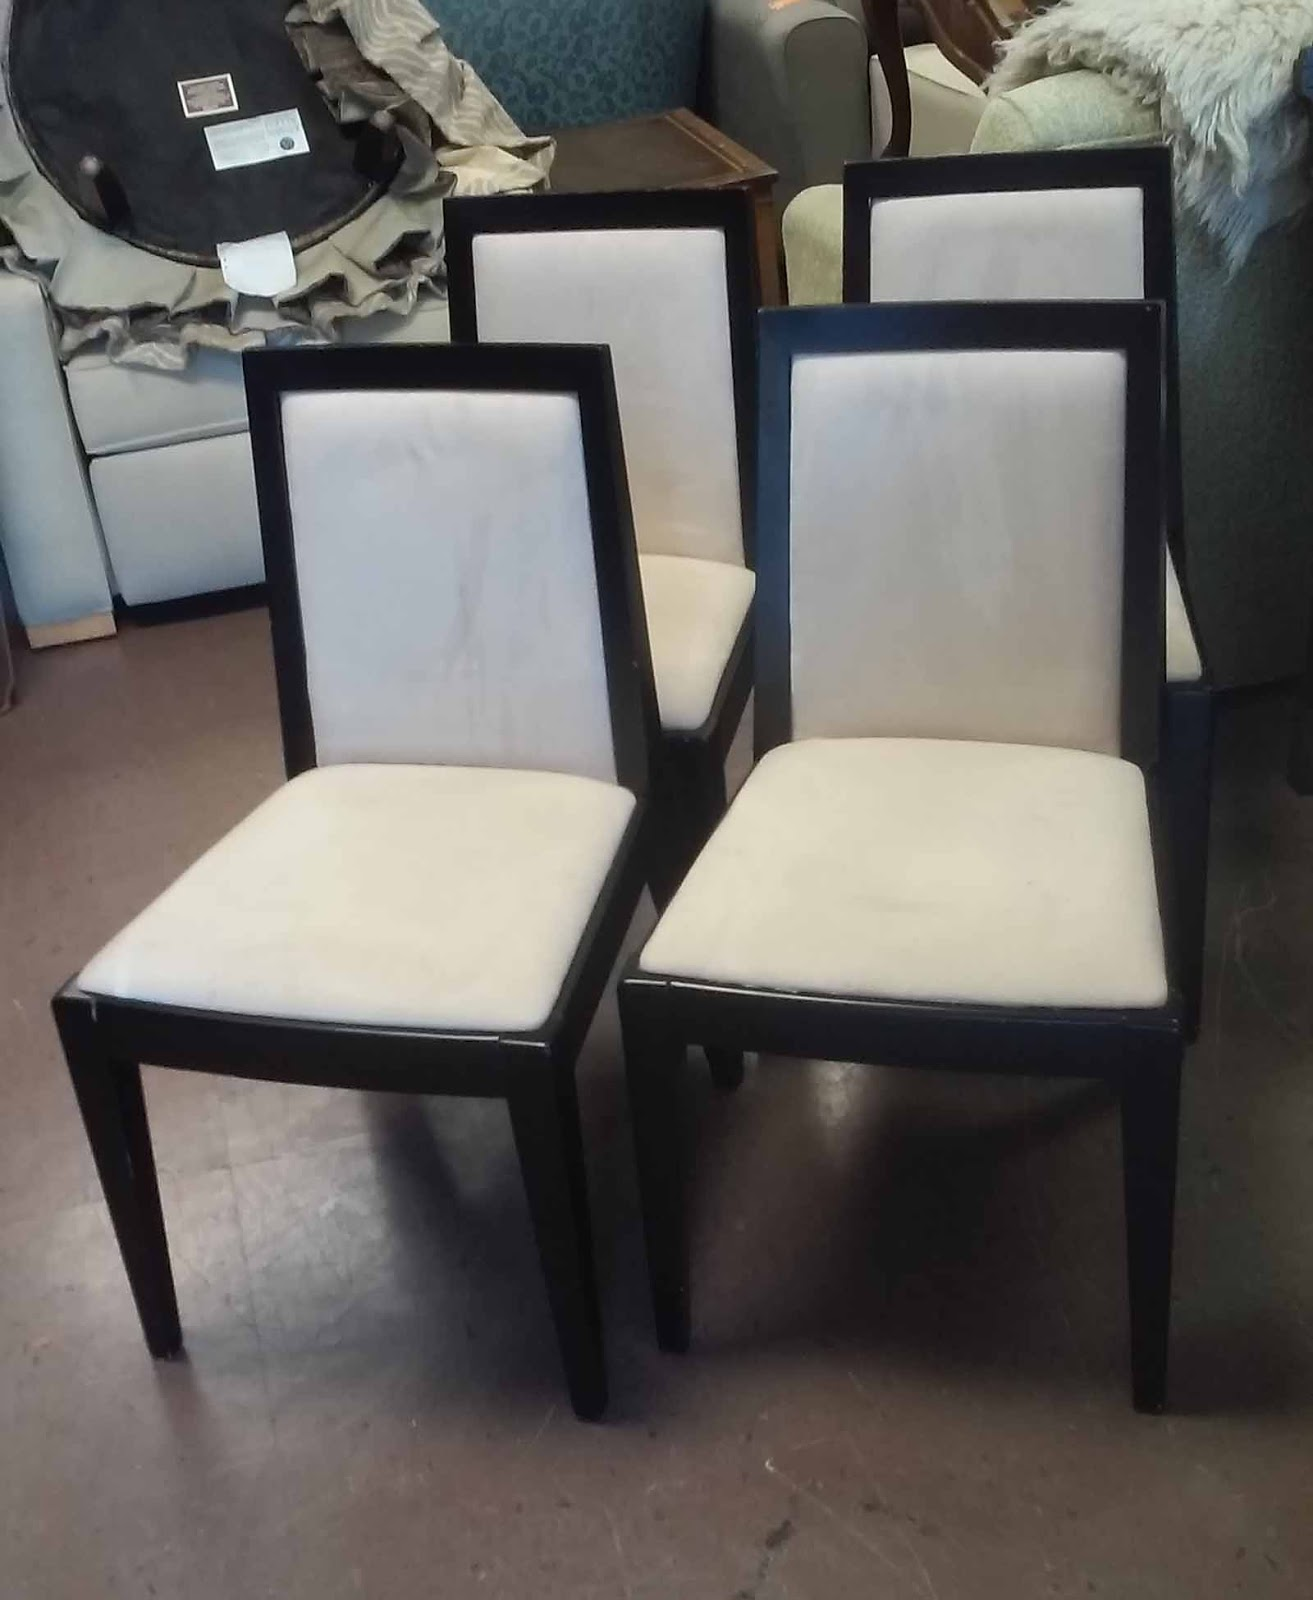 Microfiber Dining Chairs Uhuru Furniture And Collectibles Sold Modern Asian Dining